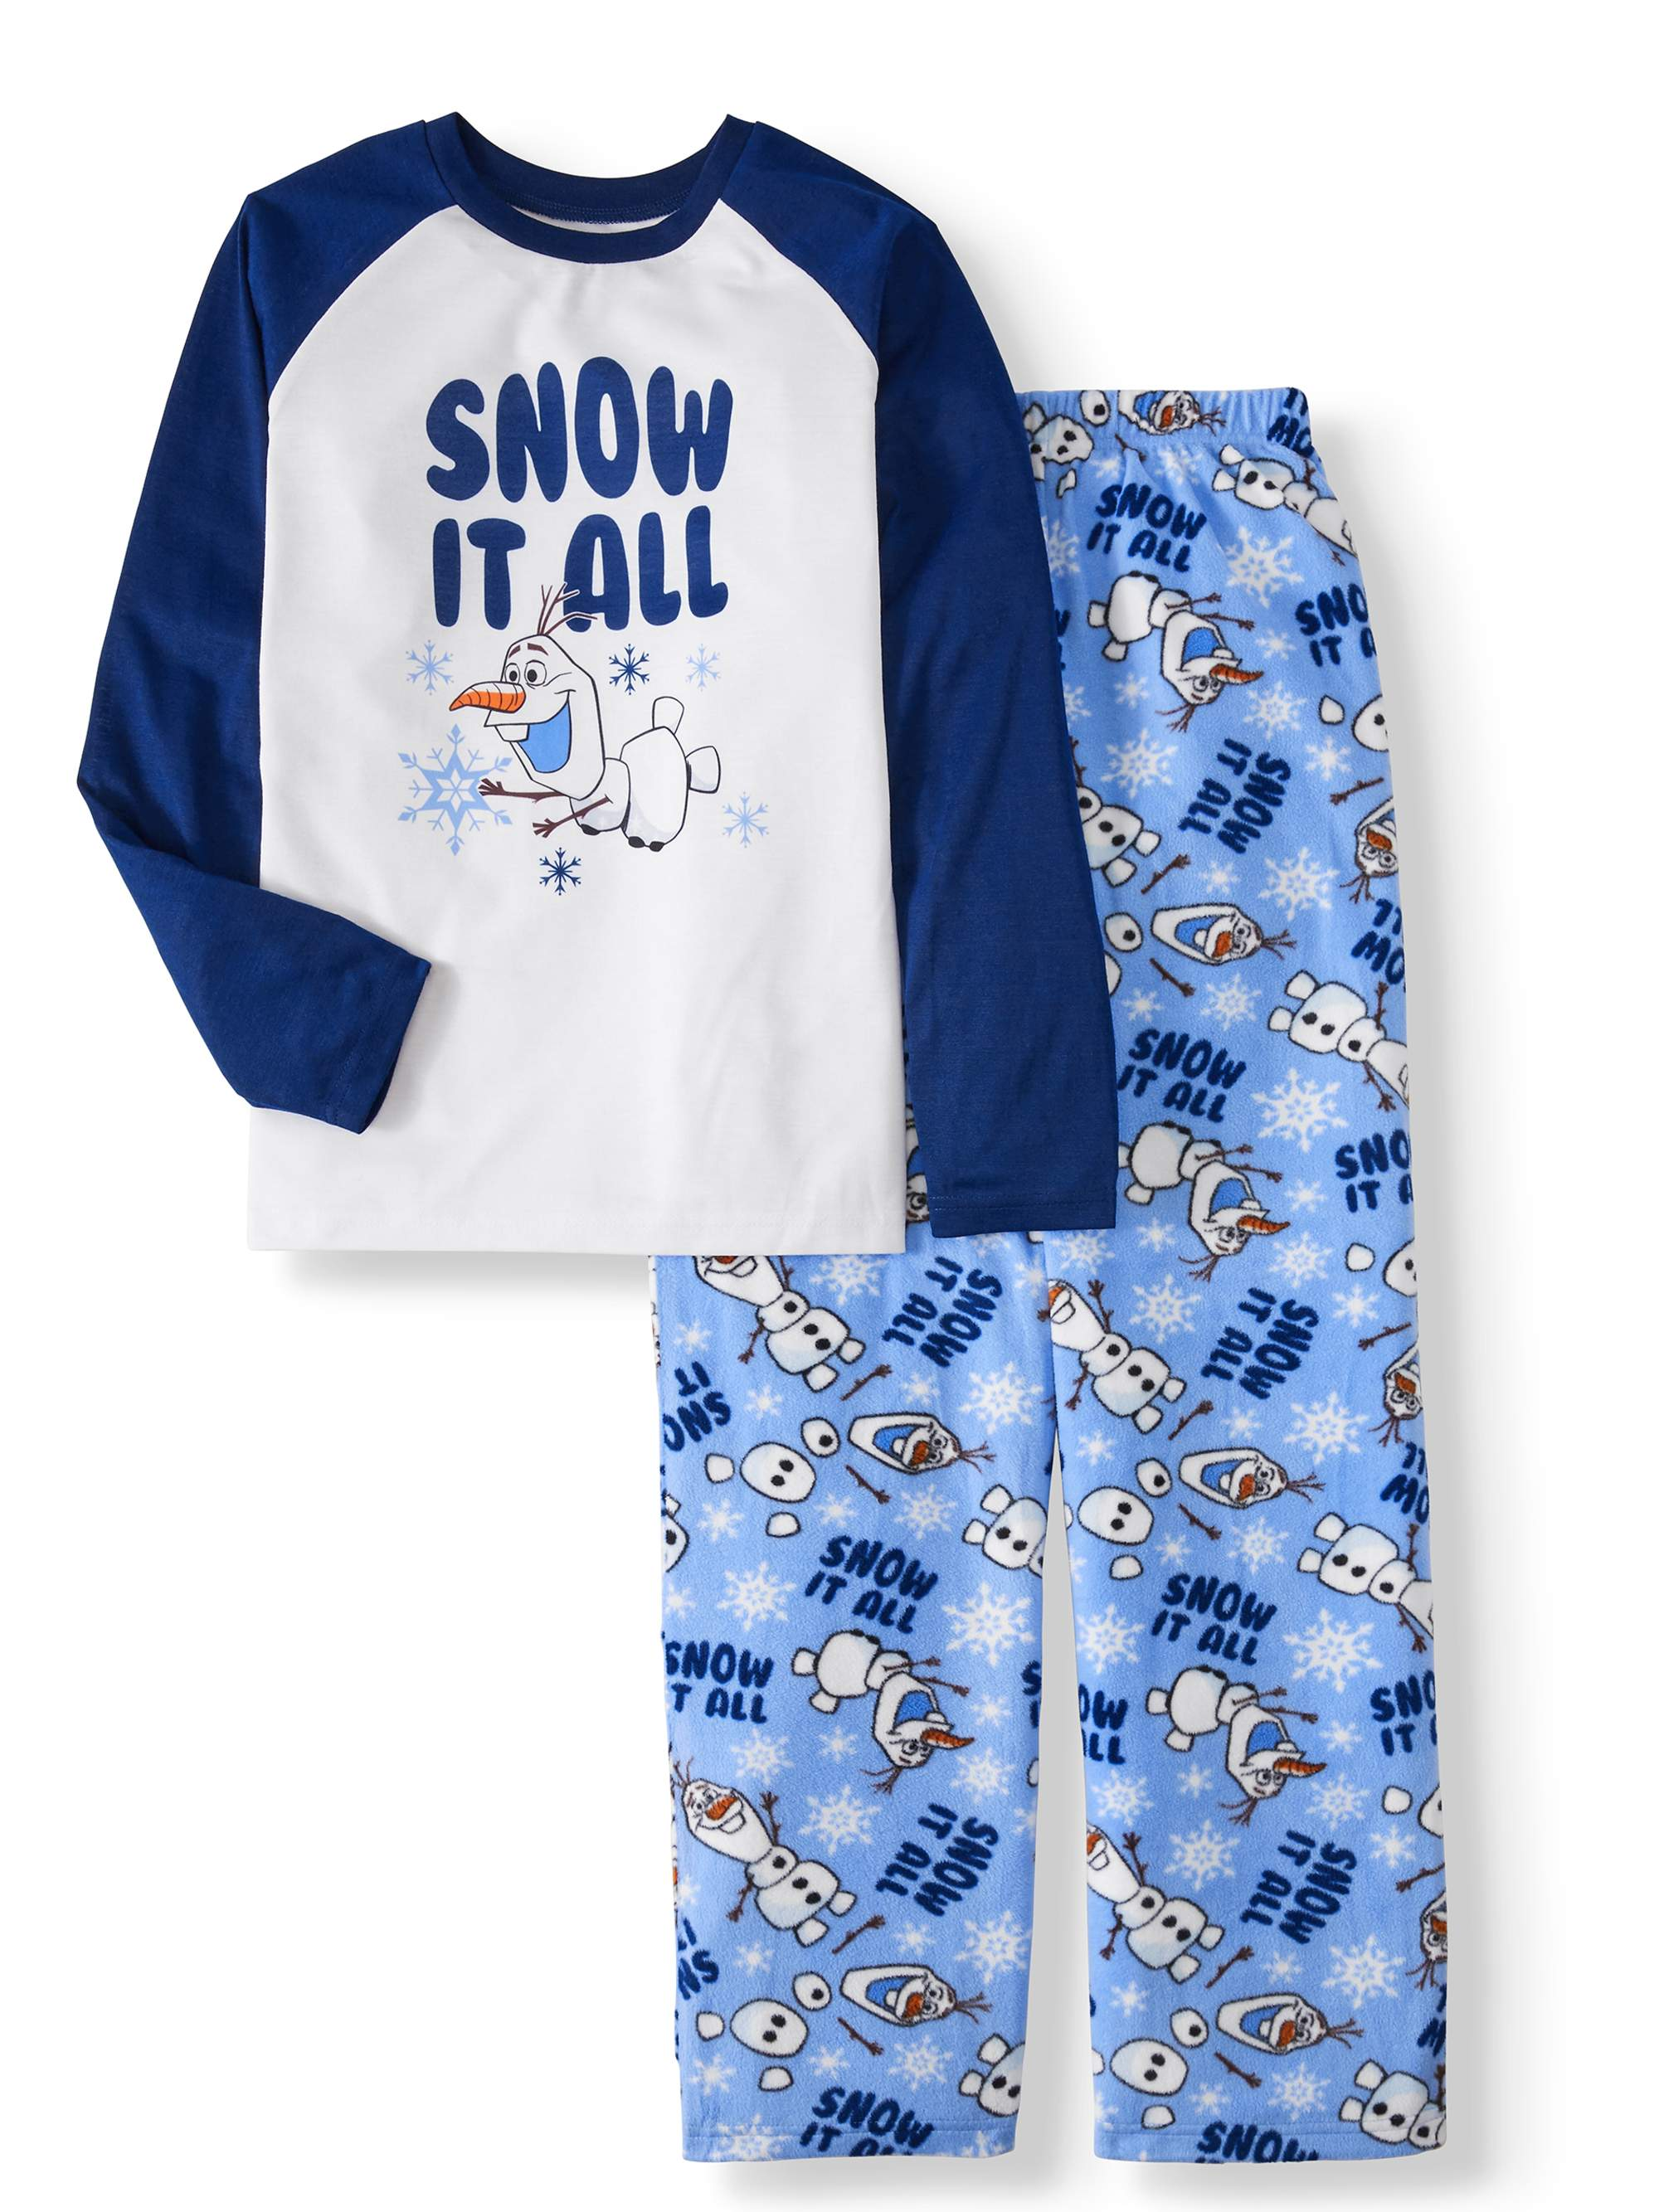 12 Months Disney Baby Boys Mickey Mouse Dream Big Glow in The Dark Snug Fit Cotton Pajamas